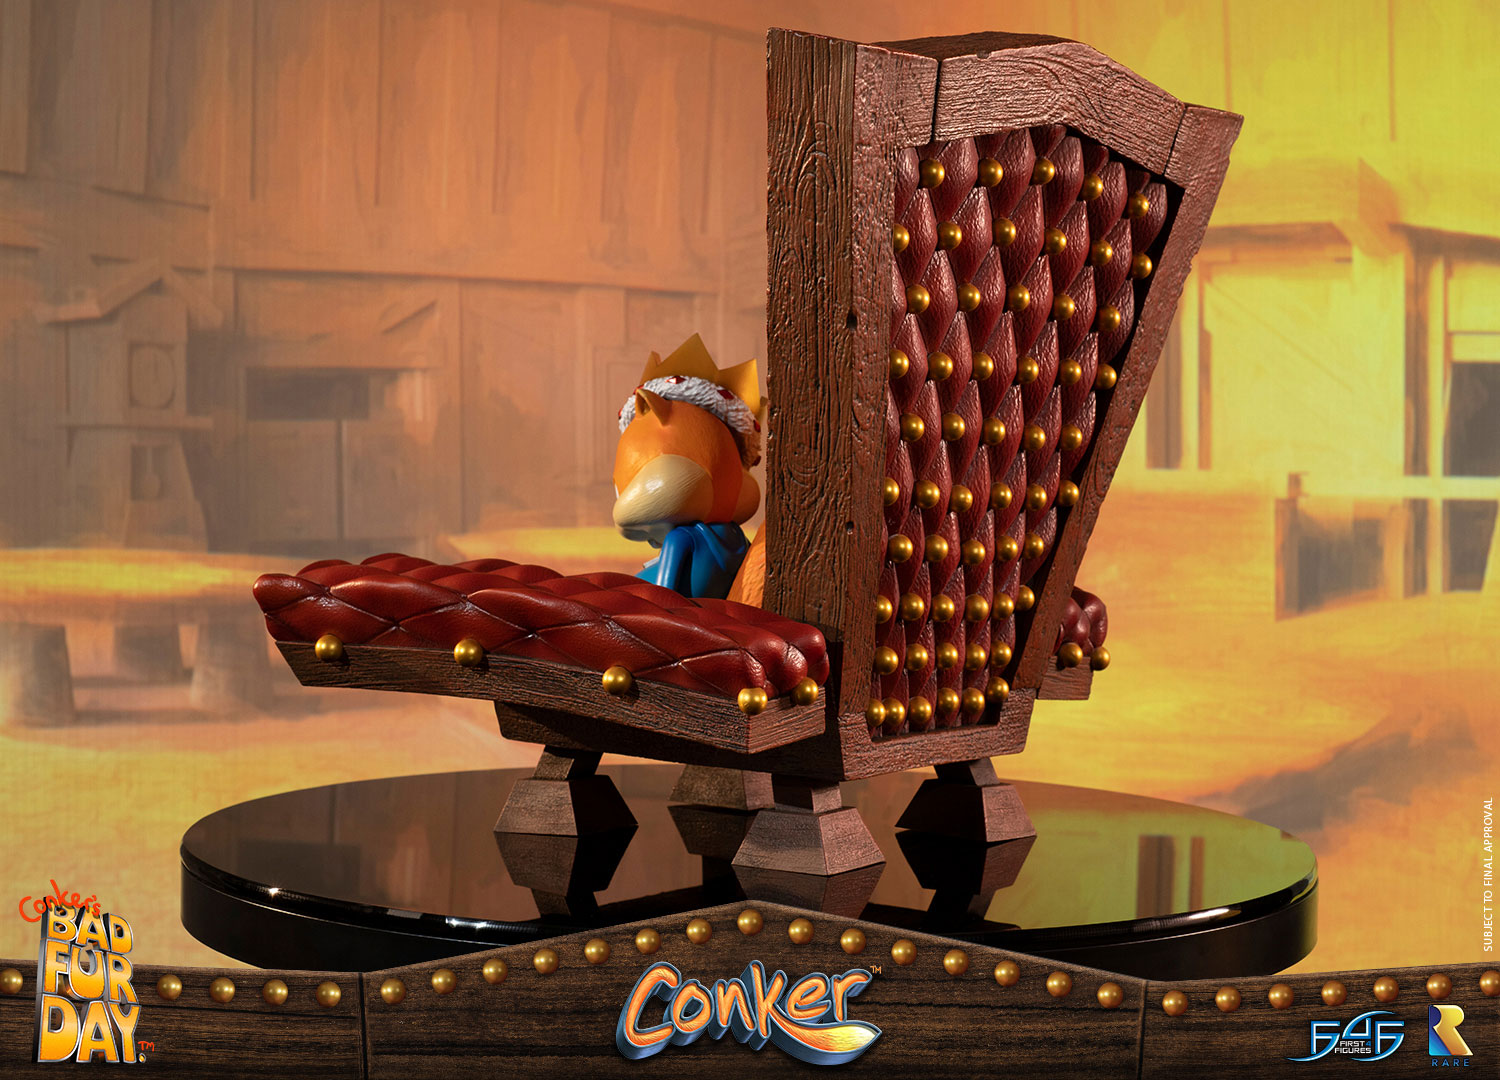 Conker (Standard Edition)